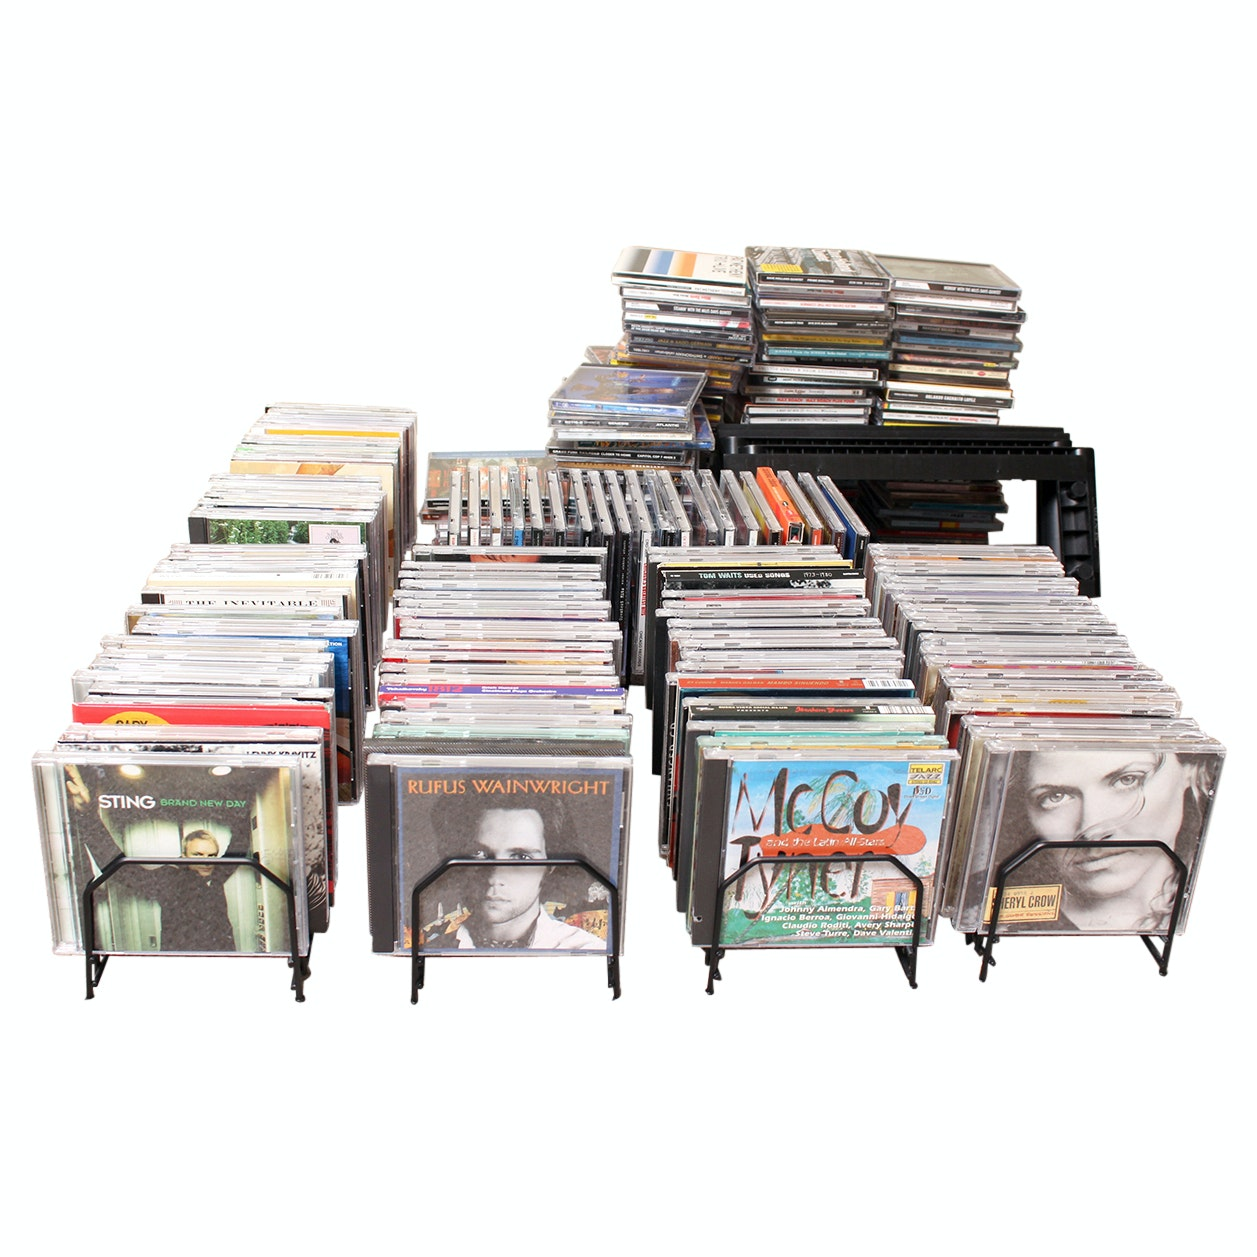 More Than 250 Compact Discs Including Rock, Jazz and Classical Music